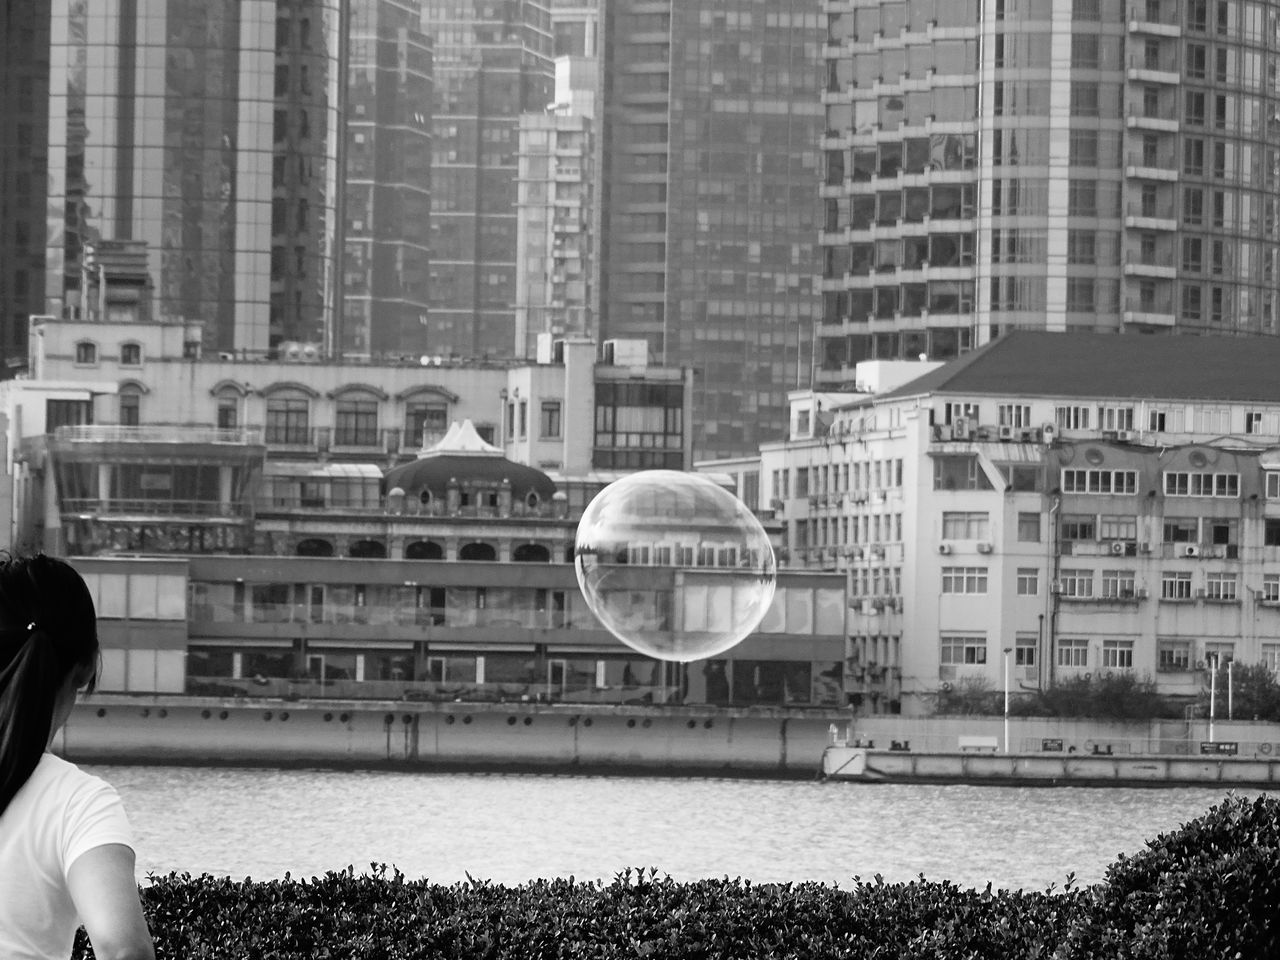 architecture, building exterior, built structure, real people, day, bubble, outdoors, nature, city, bubble wand, tree